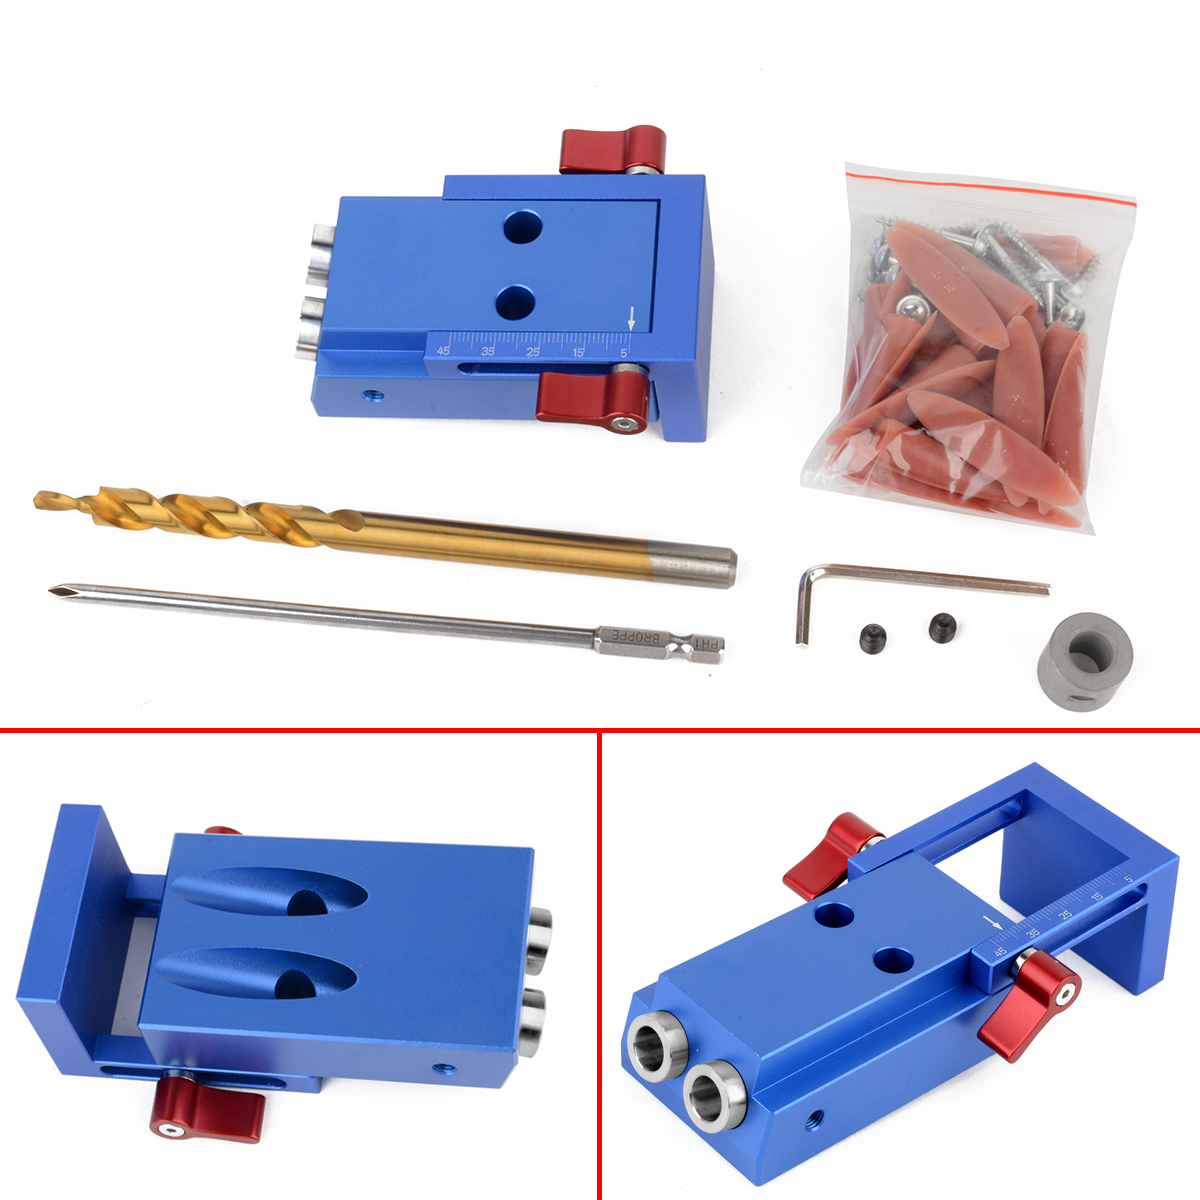 Mini Pocket Hole Drill Dowel Jig with Step Drilling Bit Woodworking Tool Kit For Powet Tool woodworking tool pocket hole jig woodwork guide repair carpenter kit system with toggle clamp and step drilling bit kreg type